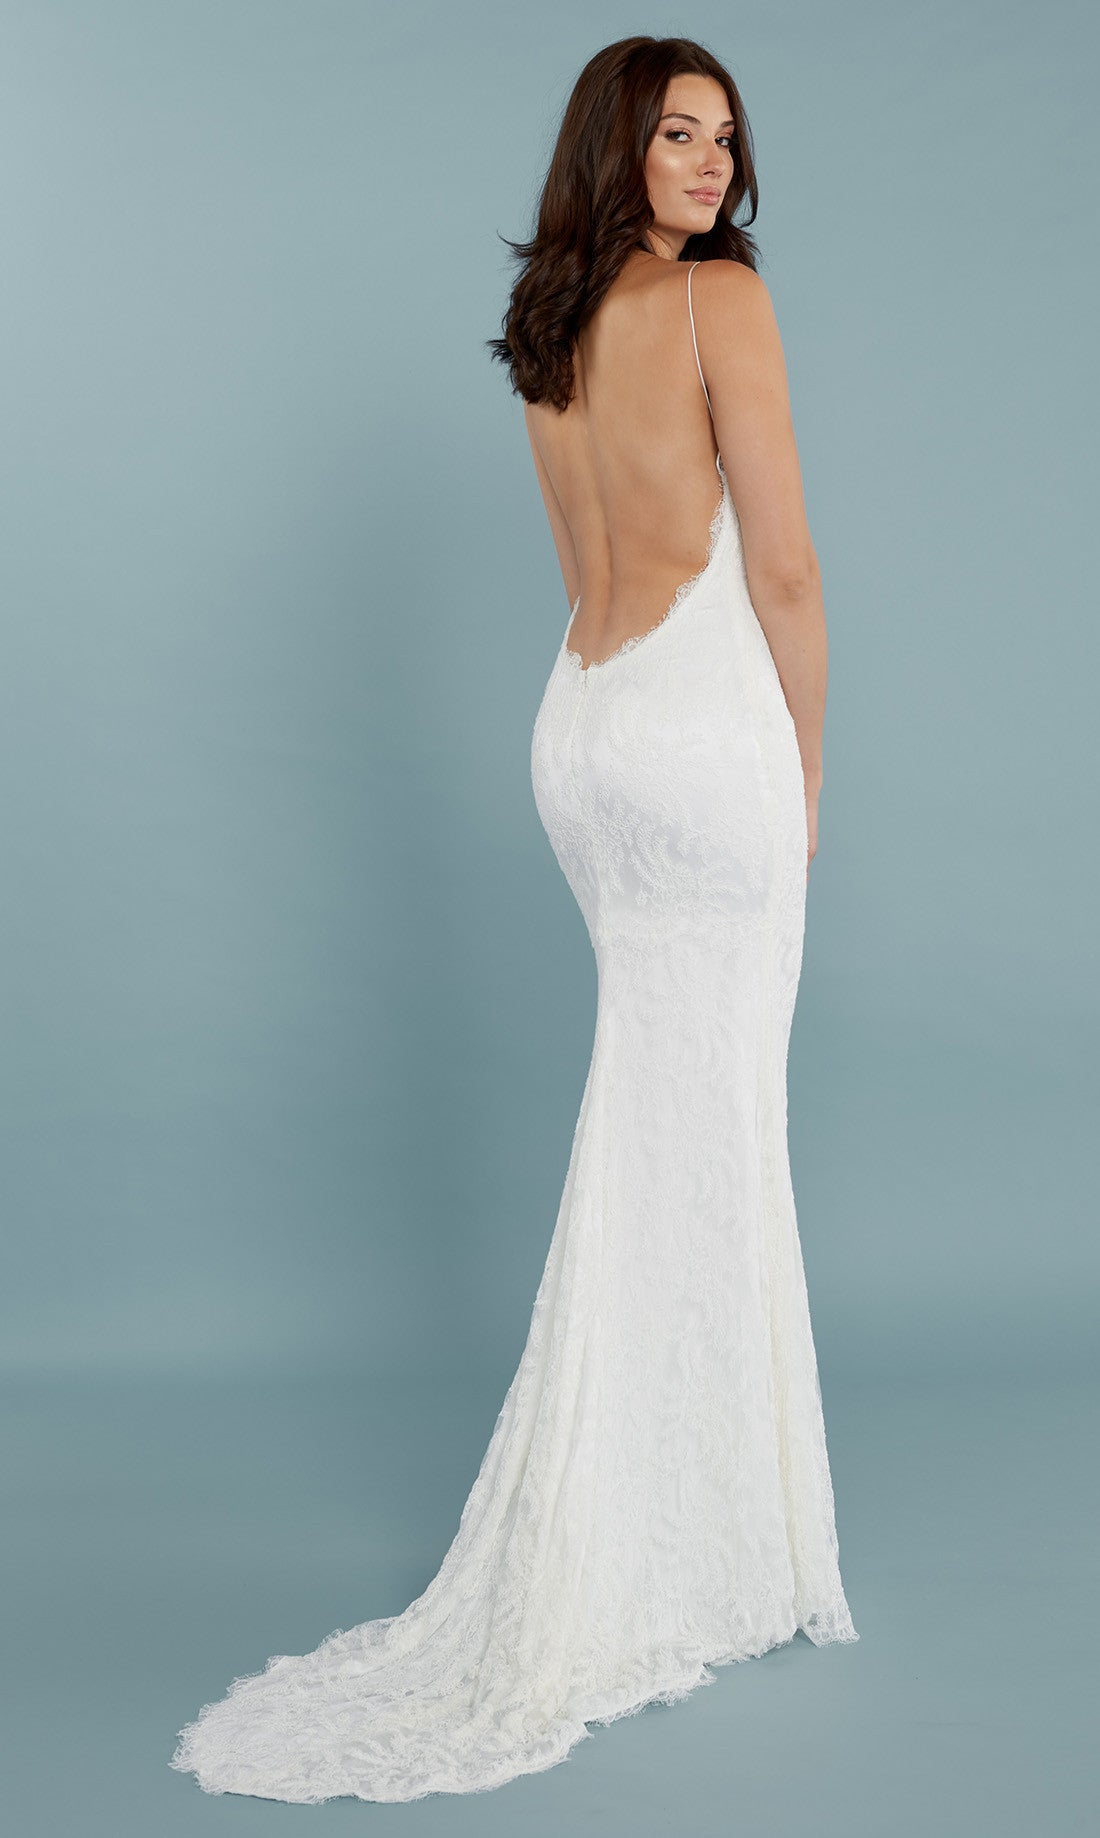 Wedding Katie May Wedding Dress princeville gown katie may gown